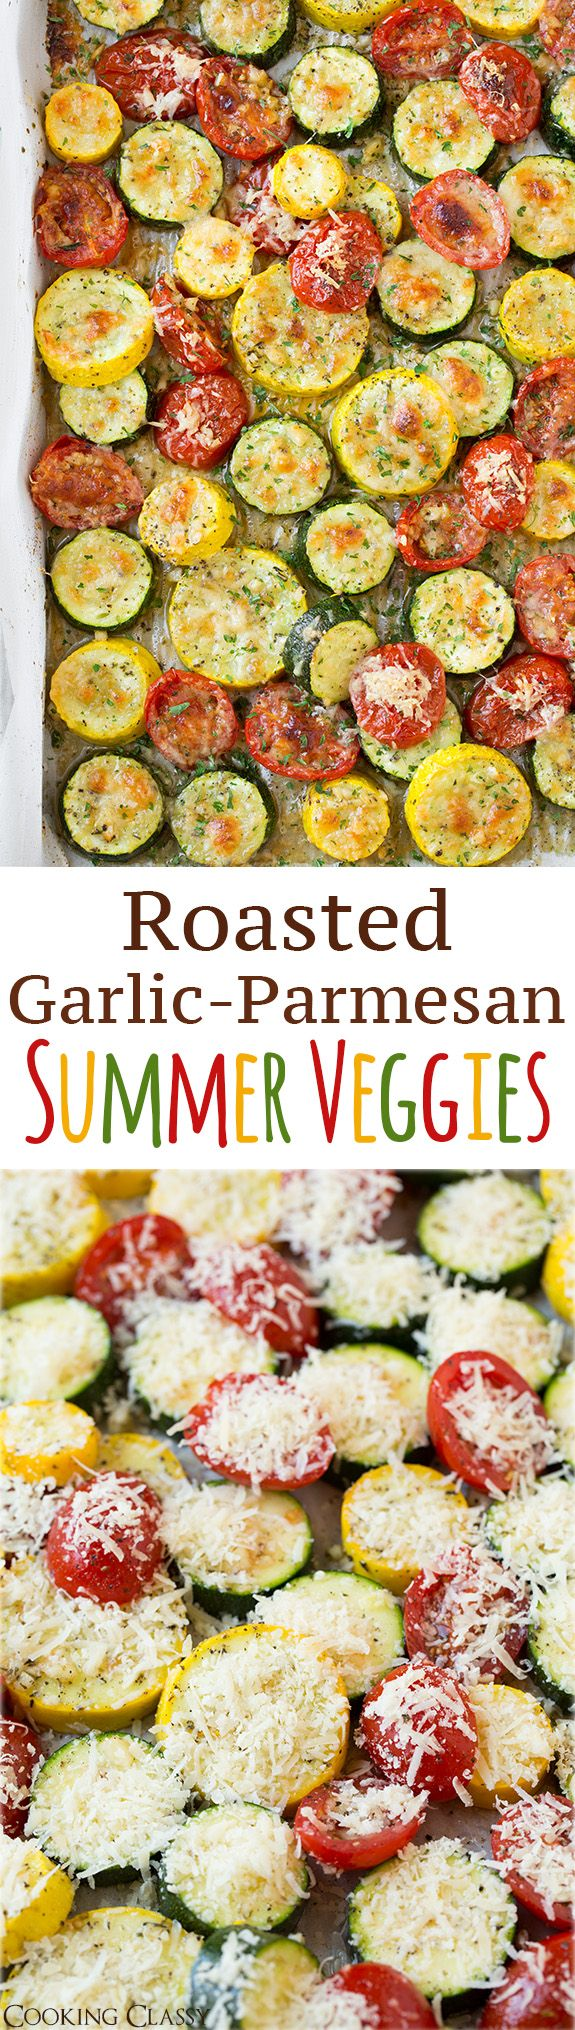 Roasted Garlic-Parmesan Zucchini, Squash and Tomatoes - this is the PERFECT use for all those fresh summer veggies! Delicious flavor and so easy to make.